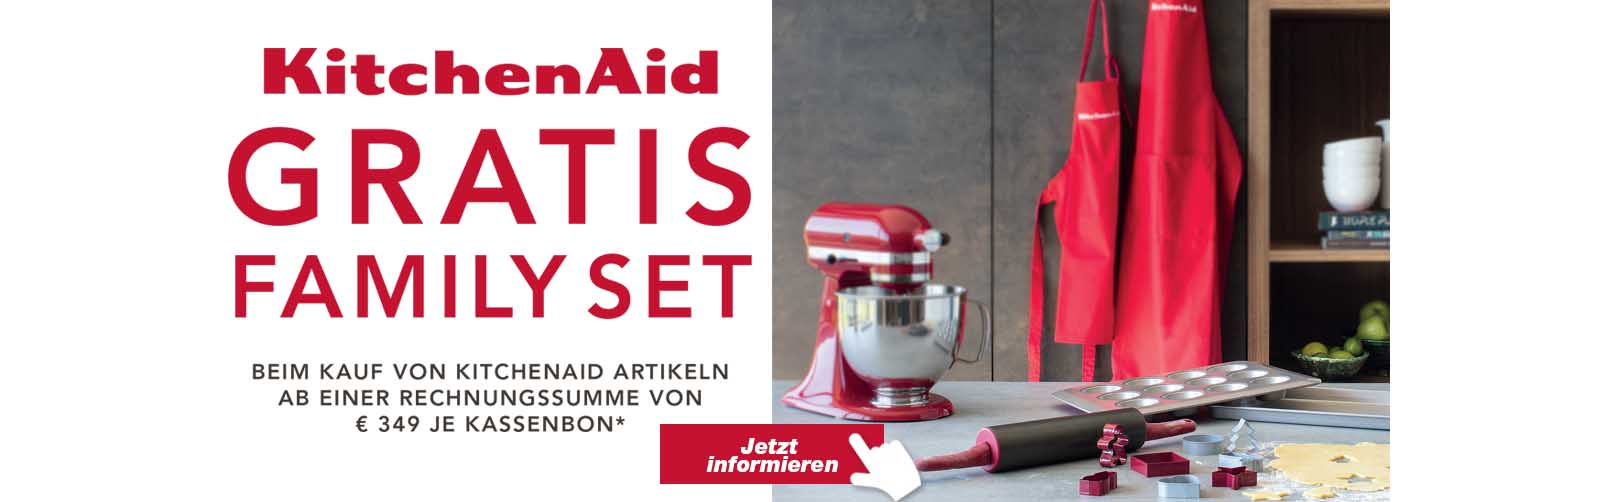 Kitchen Aid Family Set gratis